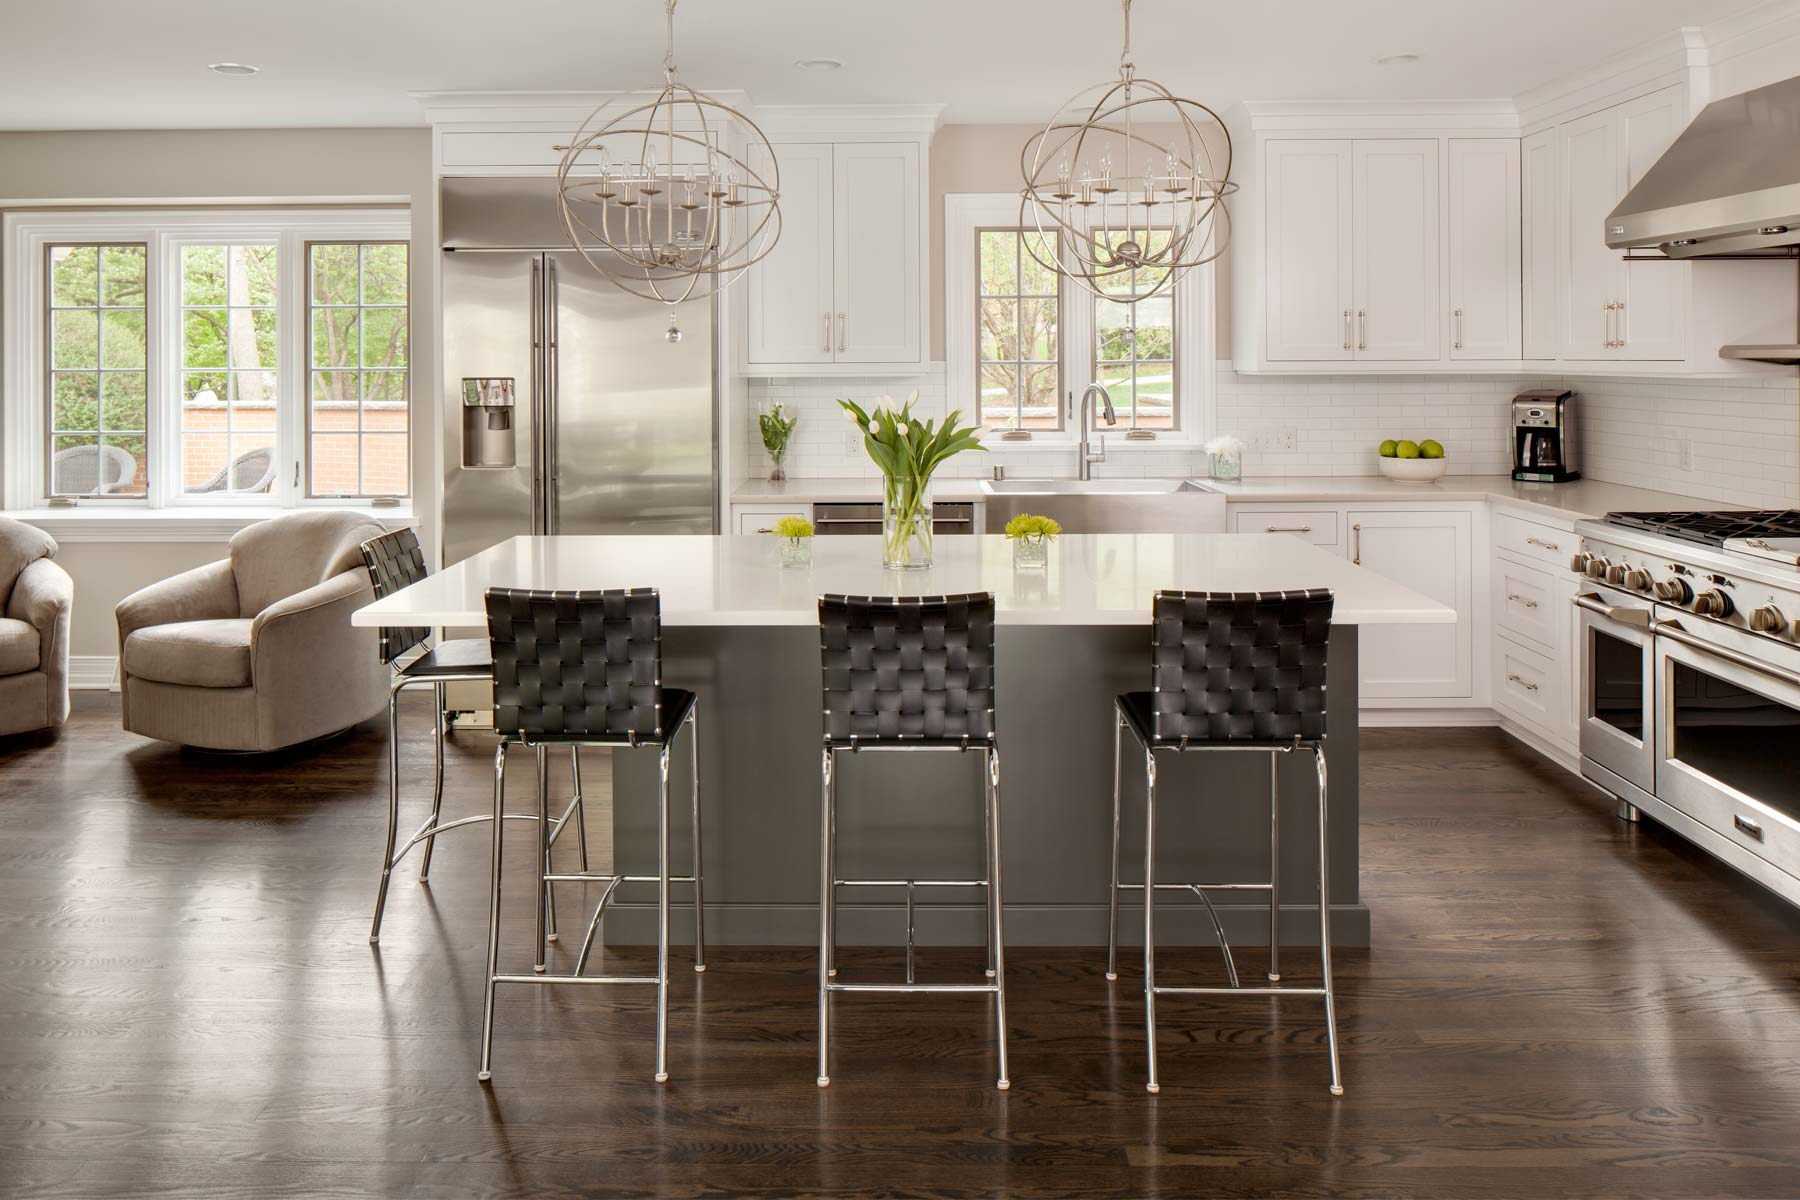 kitchen remodle modern appliances sazama home remodeling improvement additions milwaukee remodel with